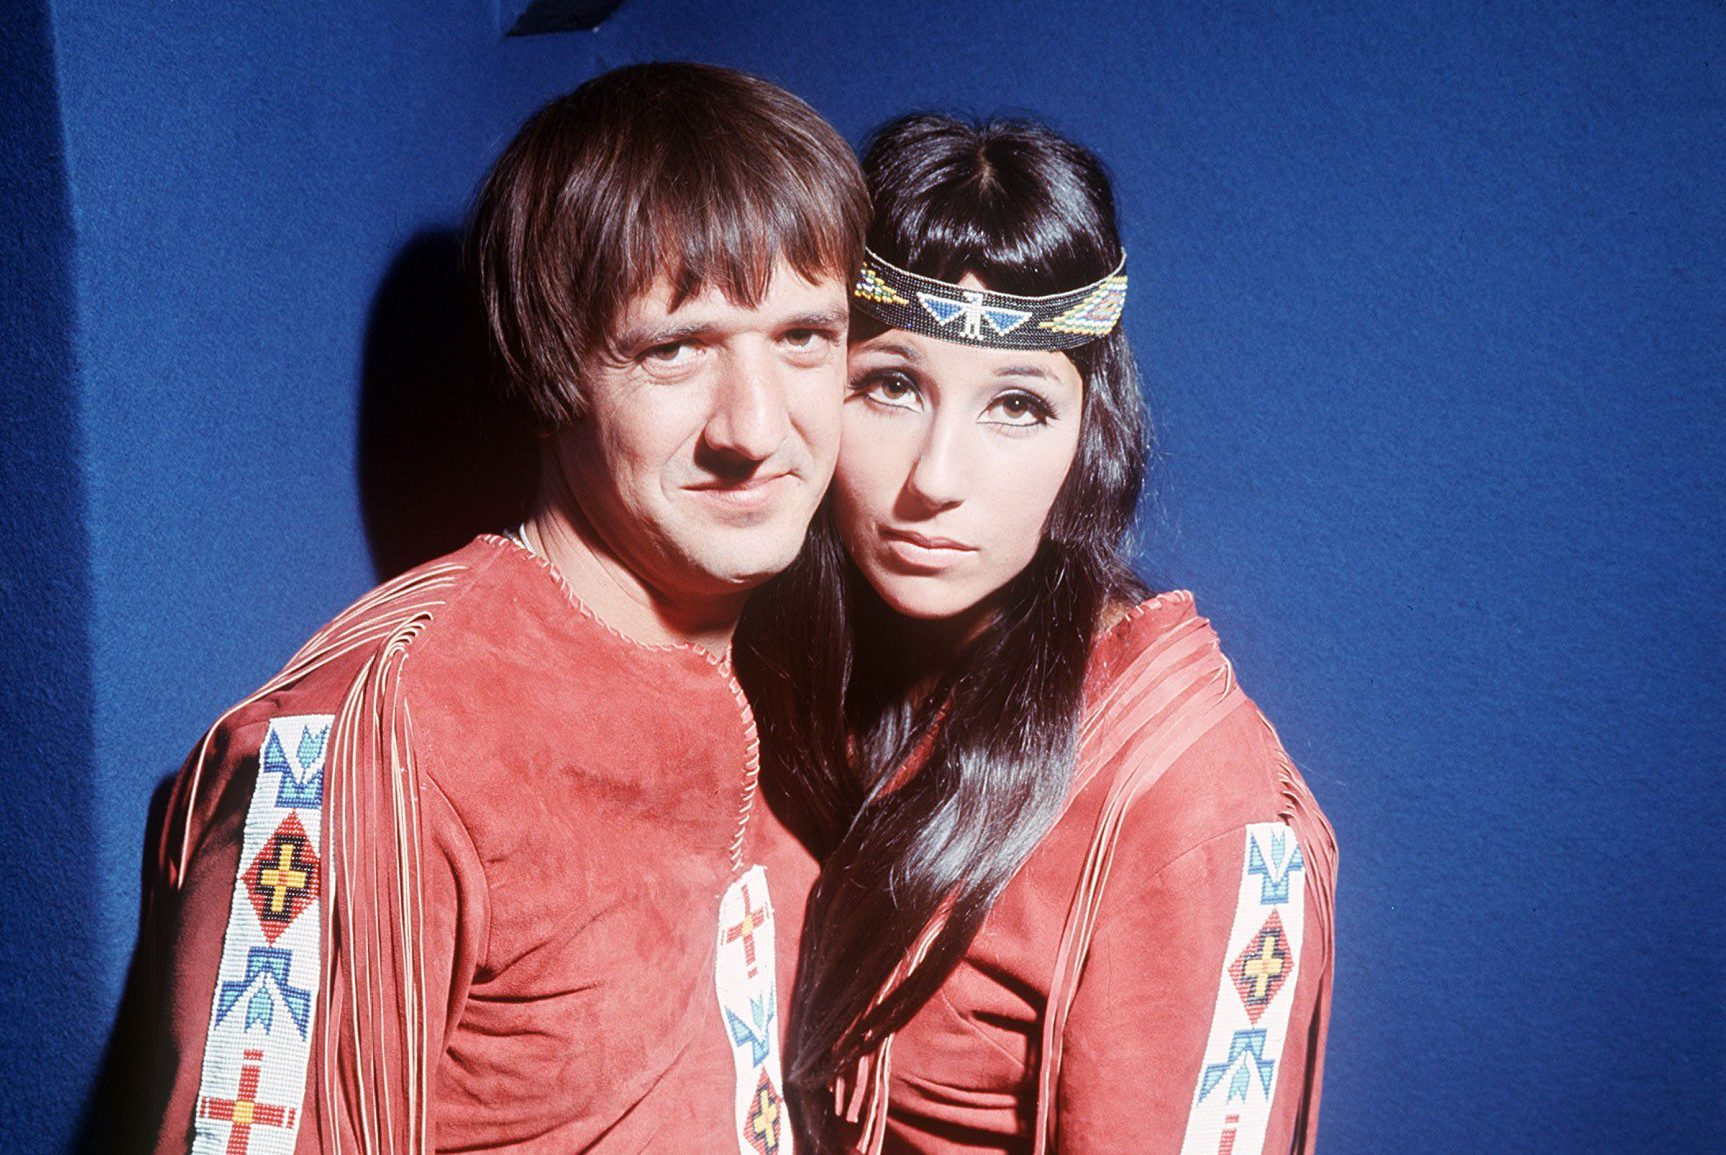 Cher sues ex-husband Sonny Bono's widow over song, record revenue